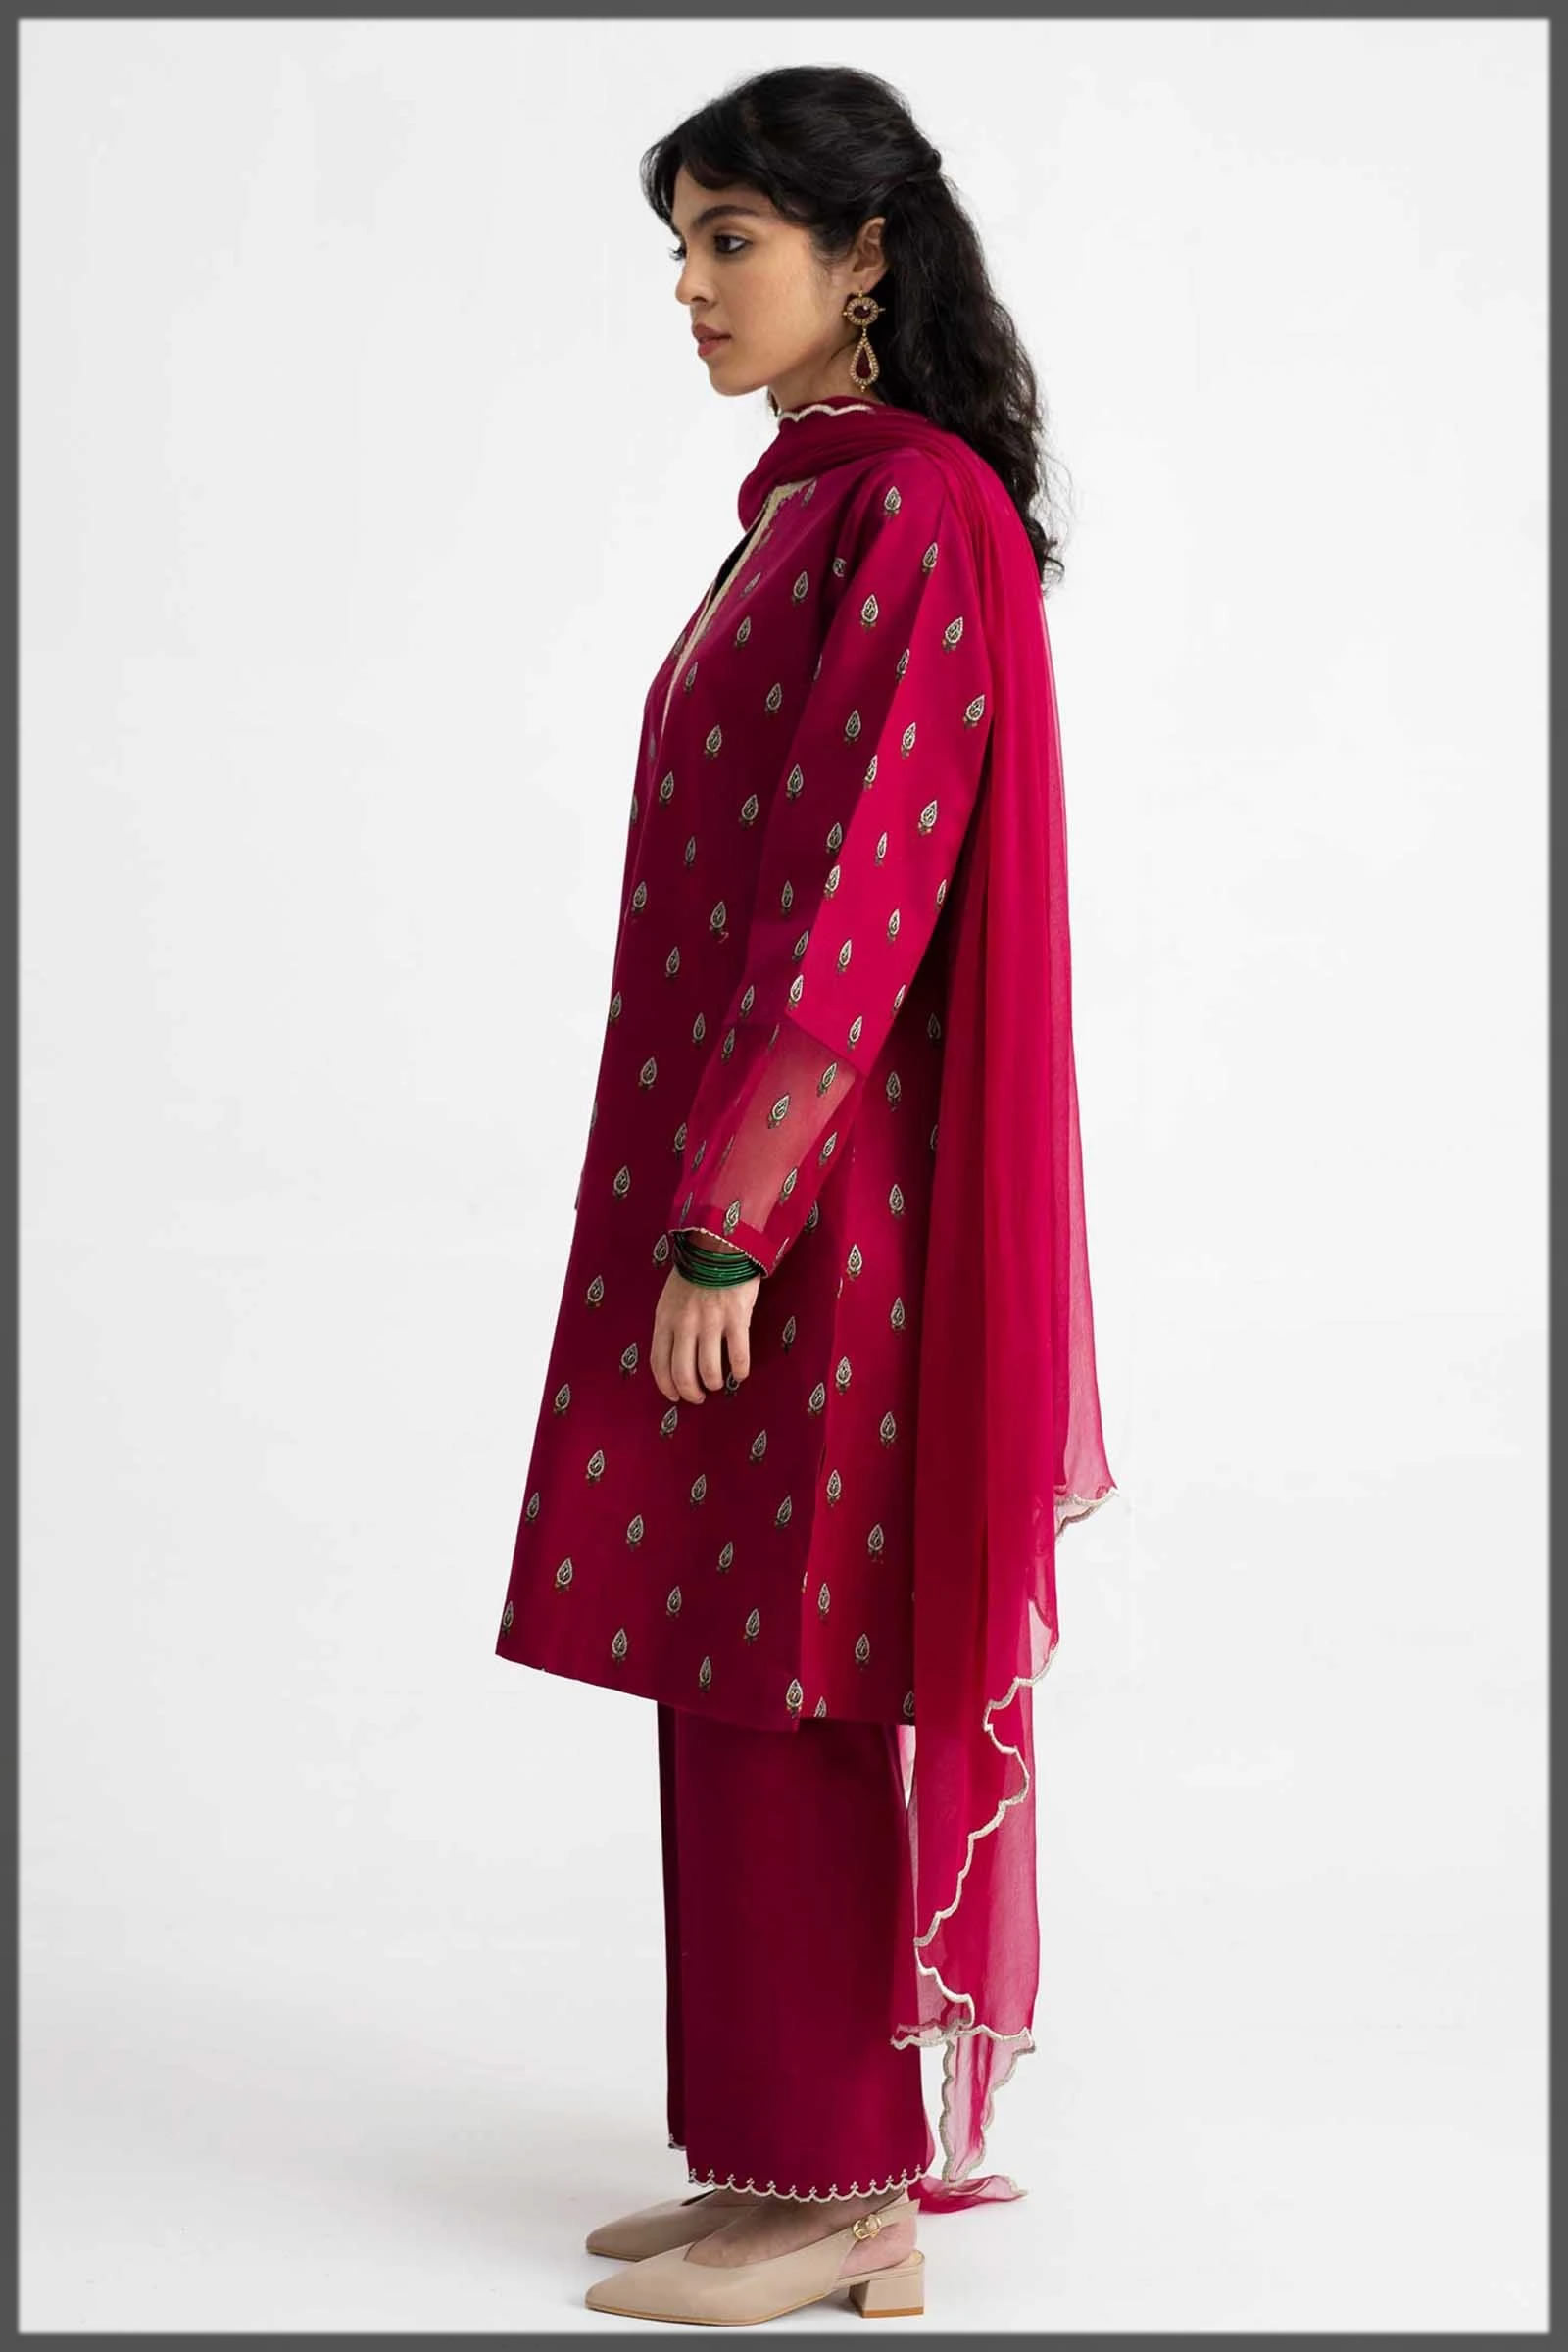 vibrant deep red outfit for girls